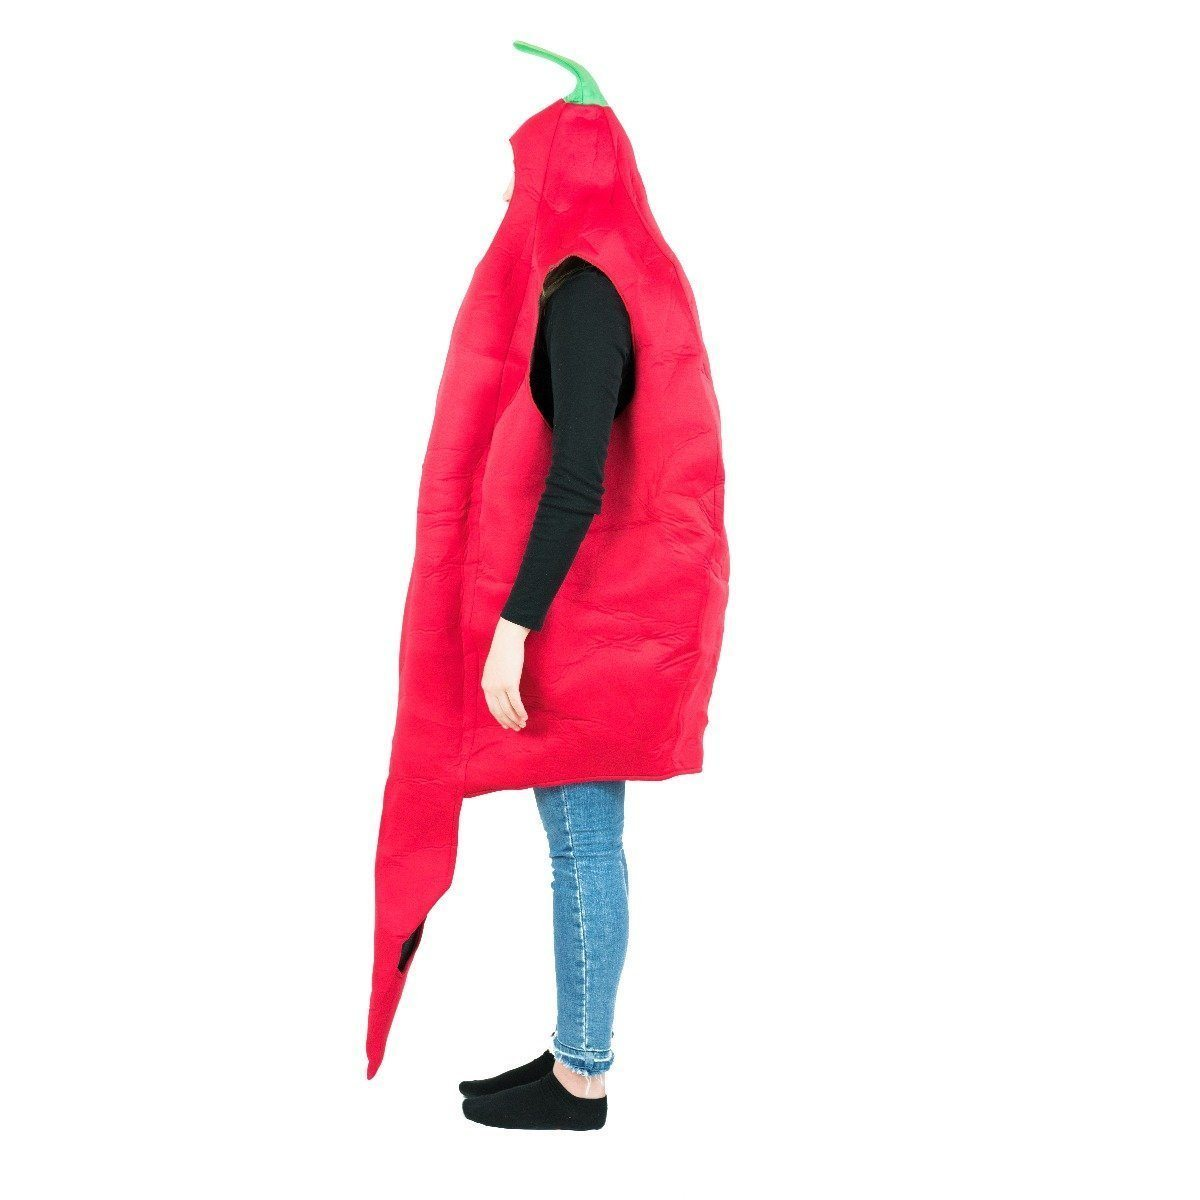 Fancy Dress - Chilli Pepper Costume